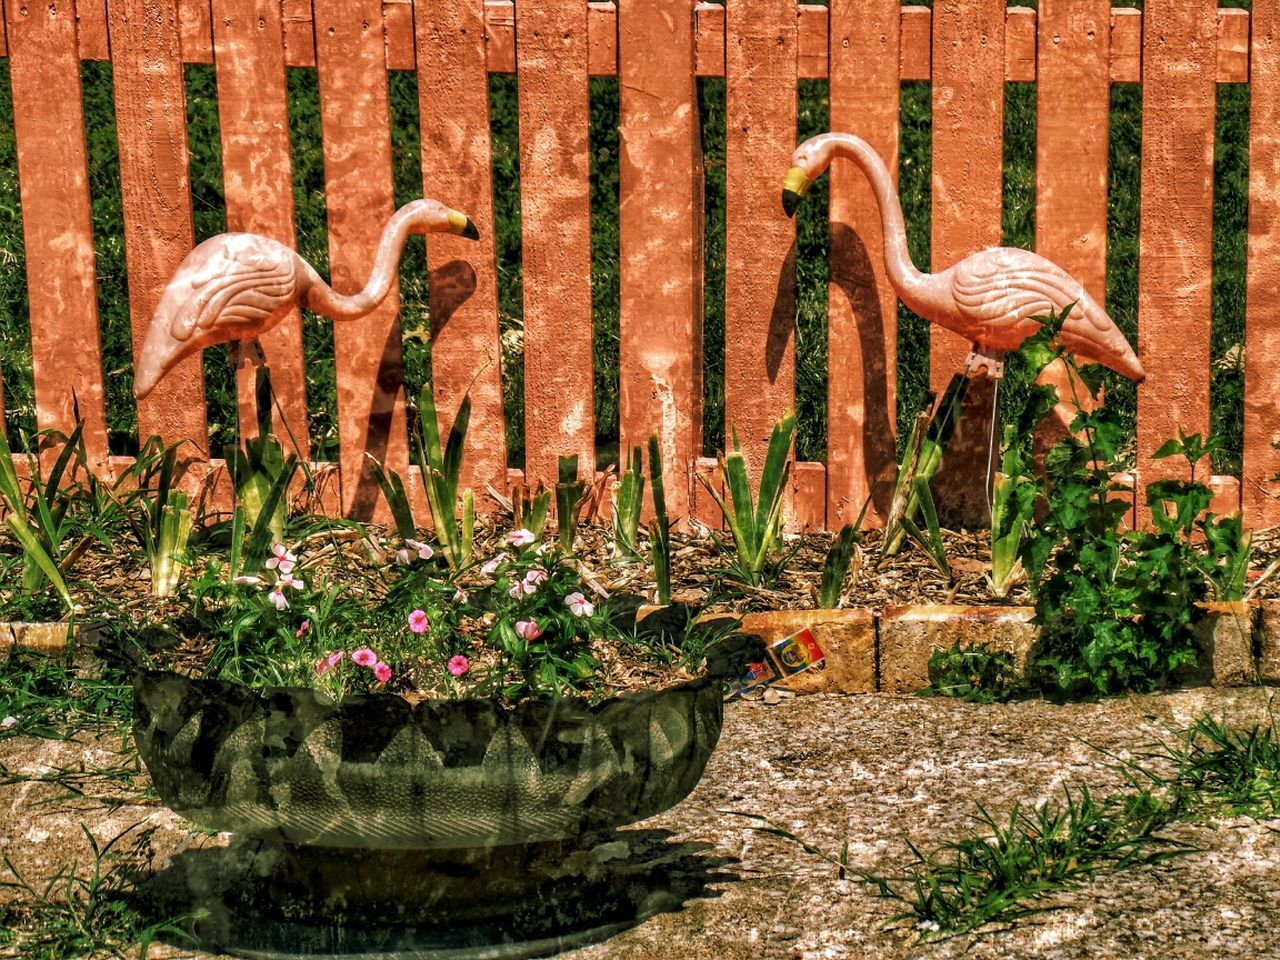 Flamingo Statue And Potted Plant In Park